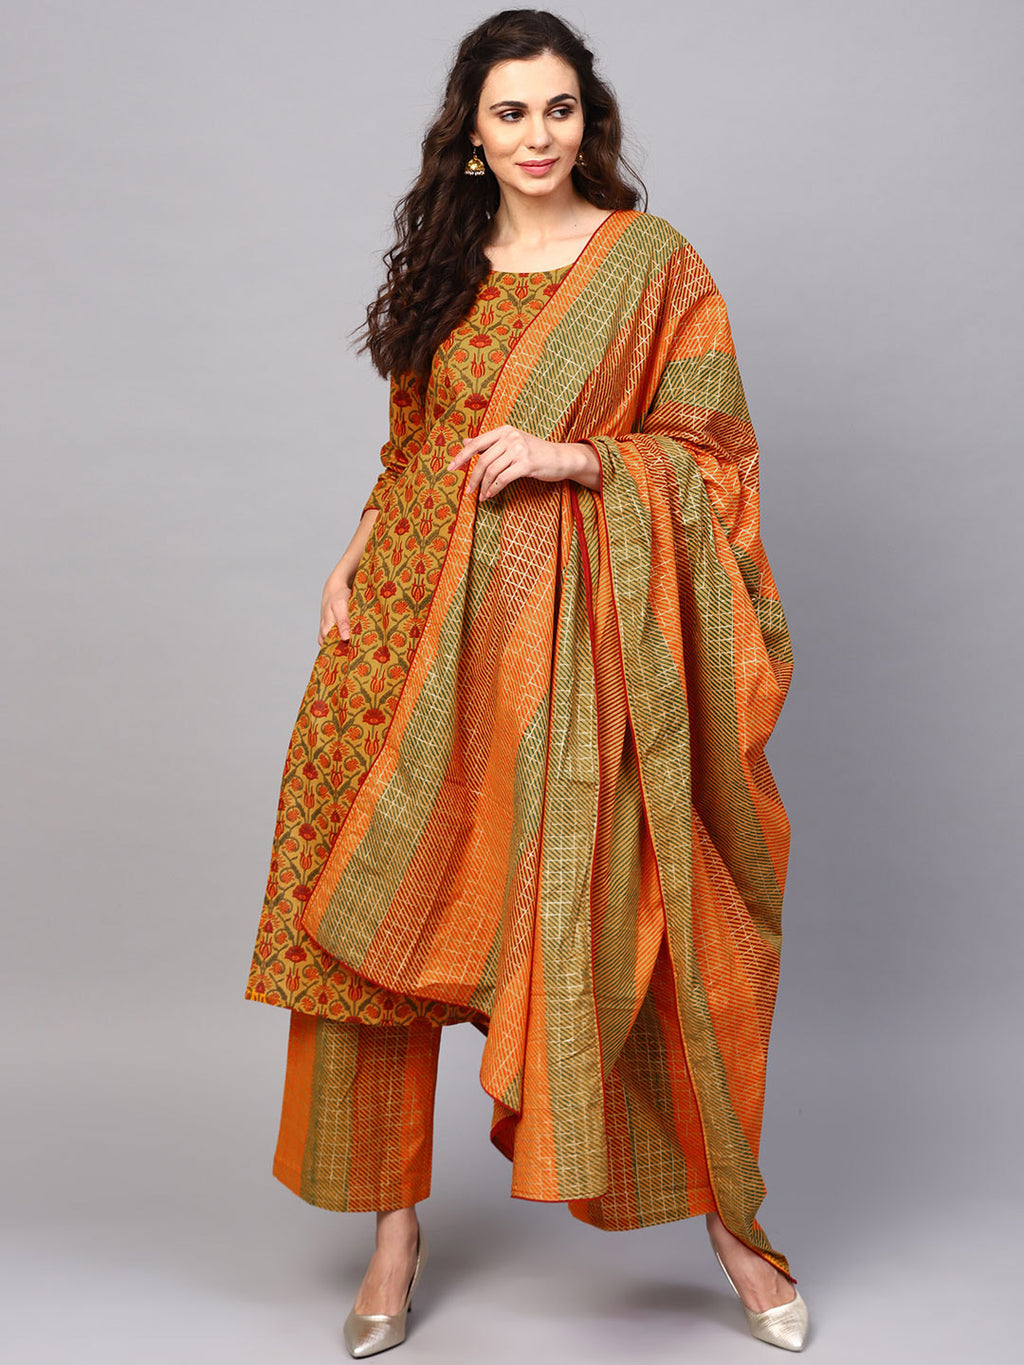 Mustard Gold Floral Printed Straight Kurta With Palazzo & Dupatta Set (Fully Stitched) | Znx4ever.com